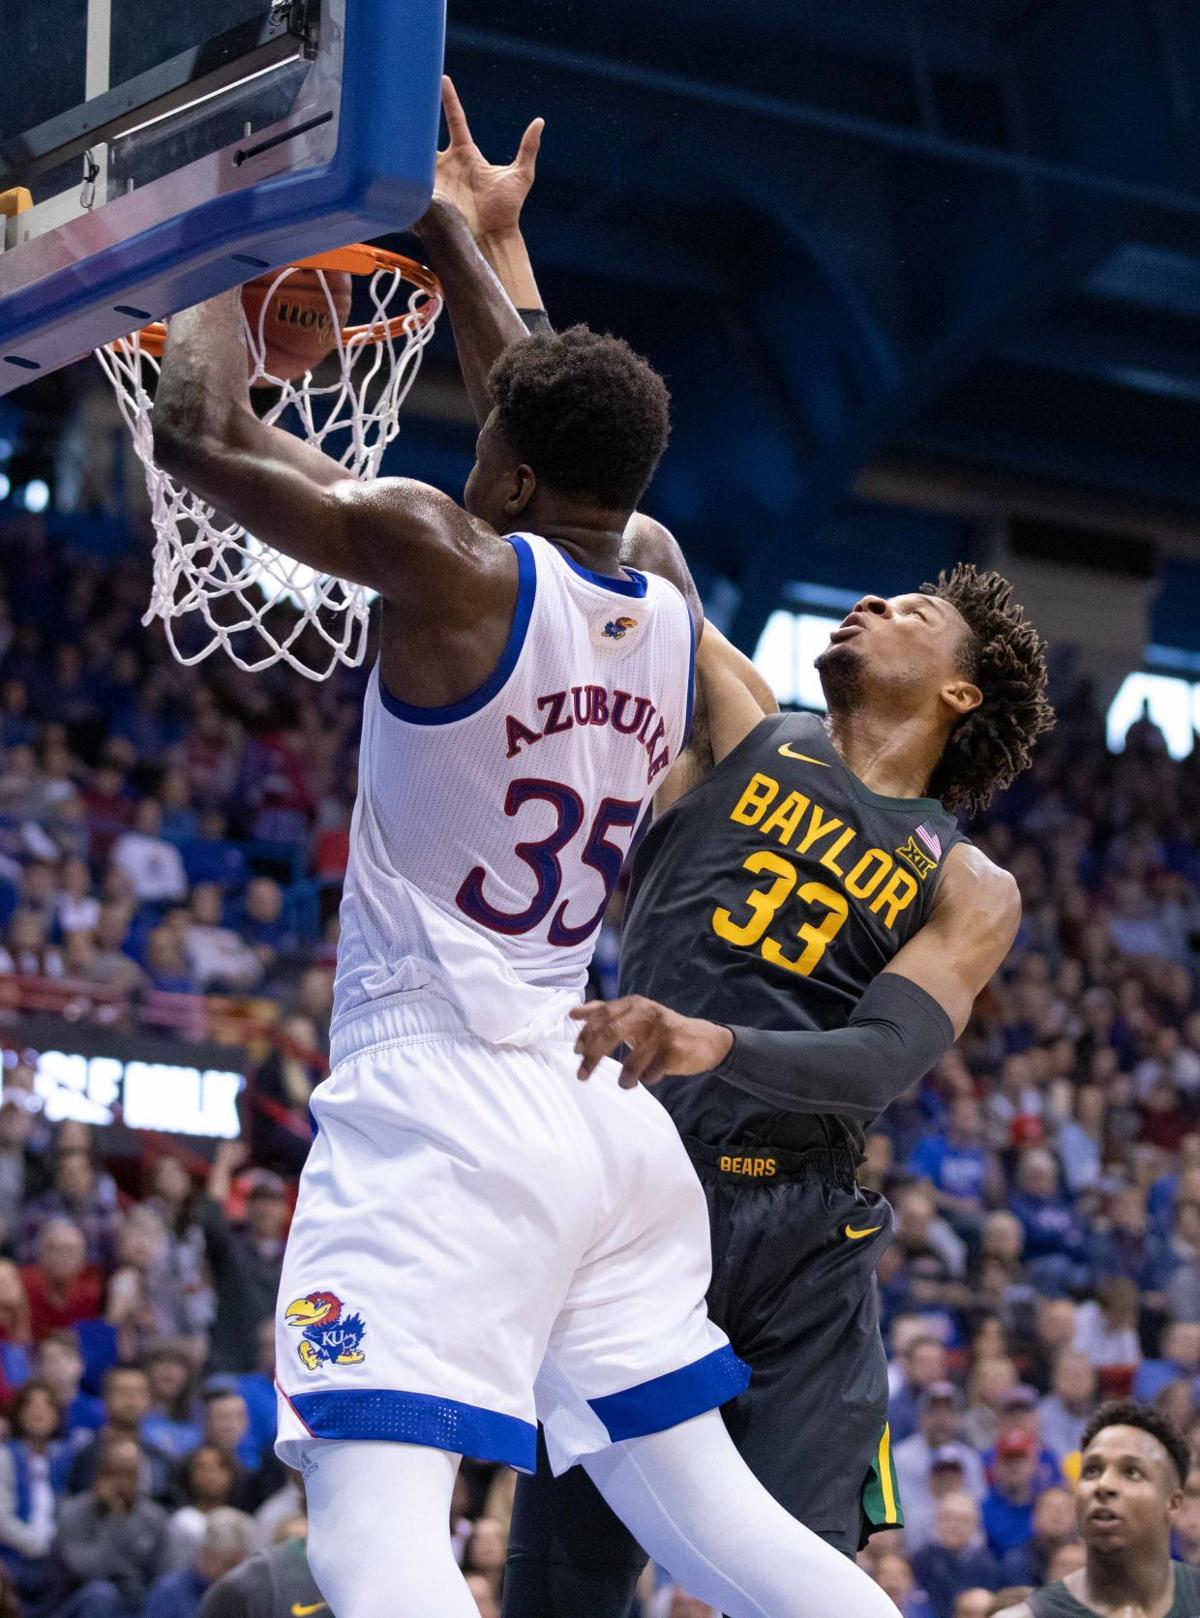 Senior center Udoka Azubuike slams the ball in the net while a Baylor guard tries to block